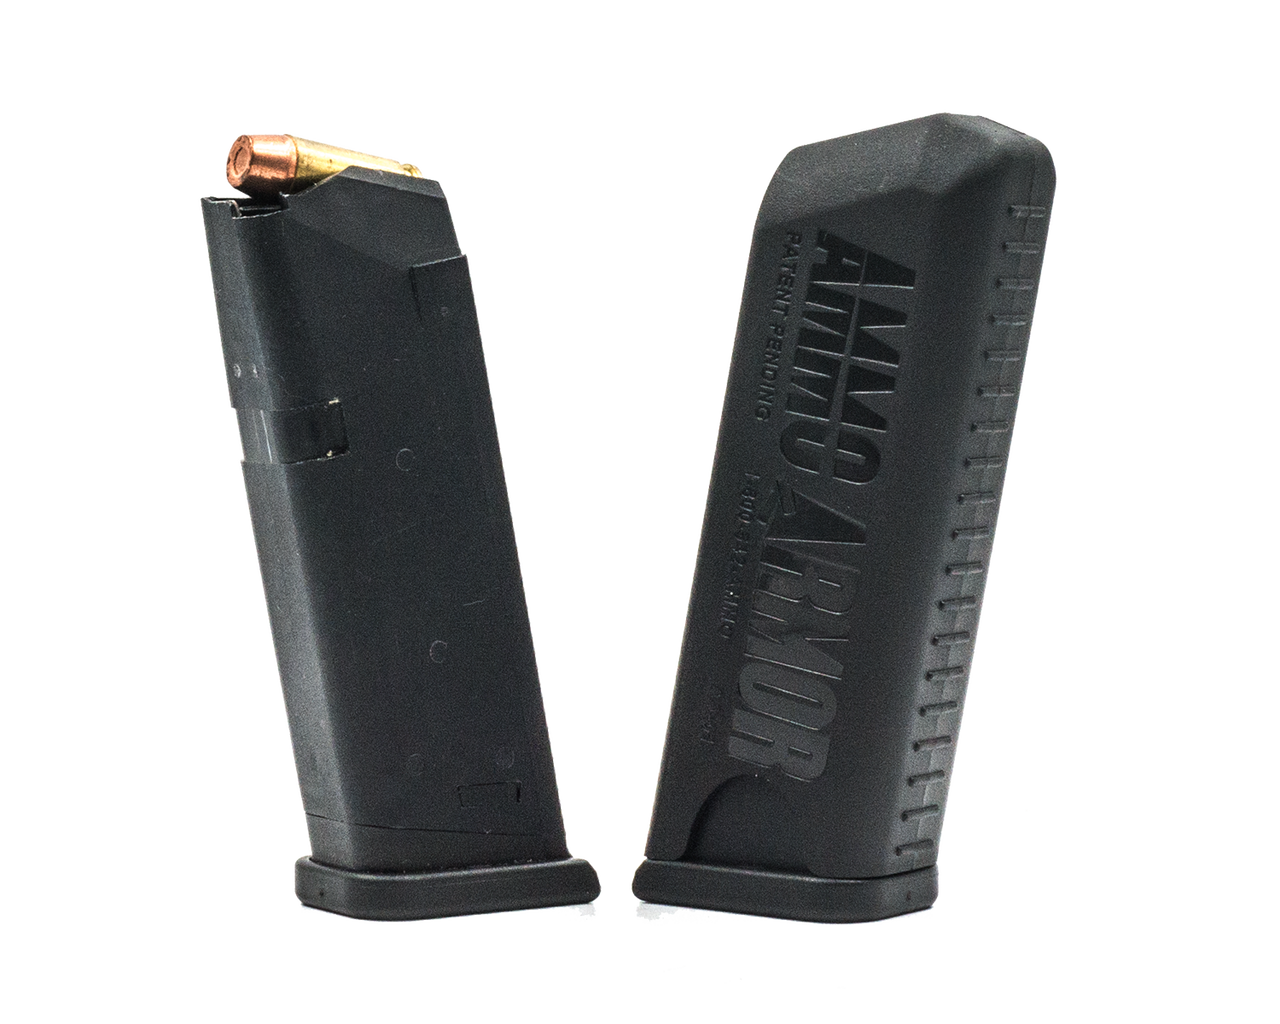 M&P Shield 40 Ammo Armor